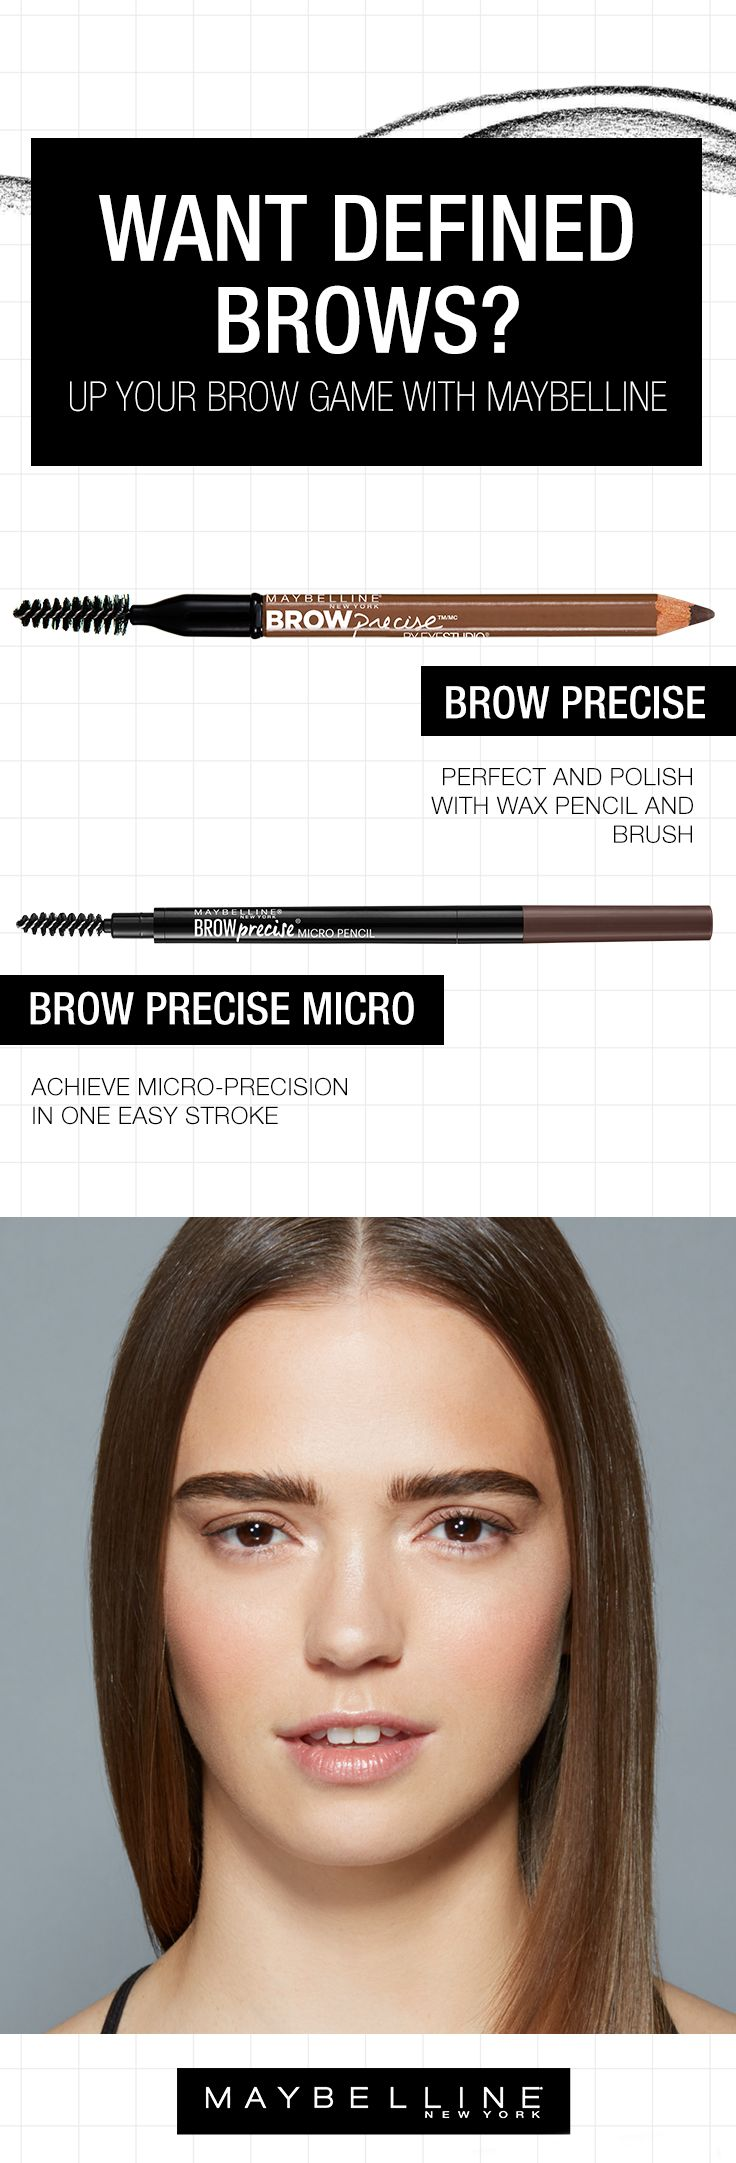 Overplucked Dont Worry Everyones Done It Up Your Brow Game With